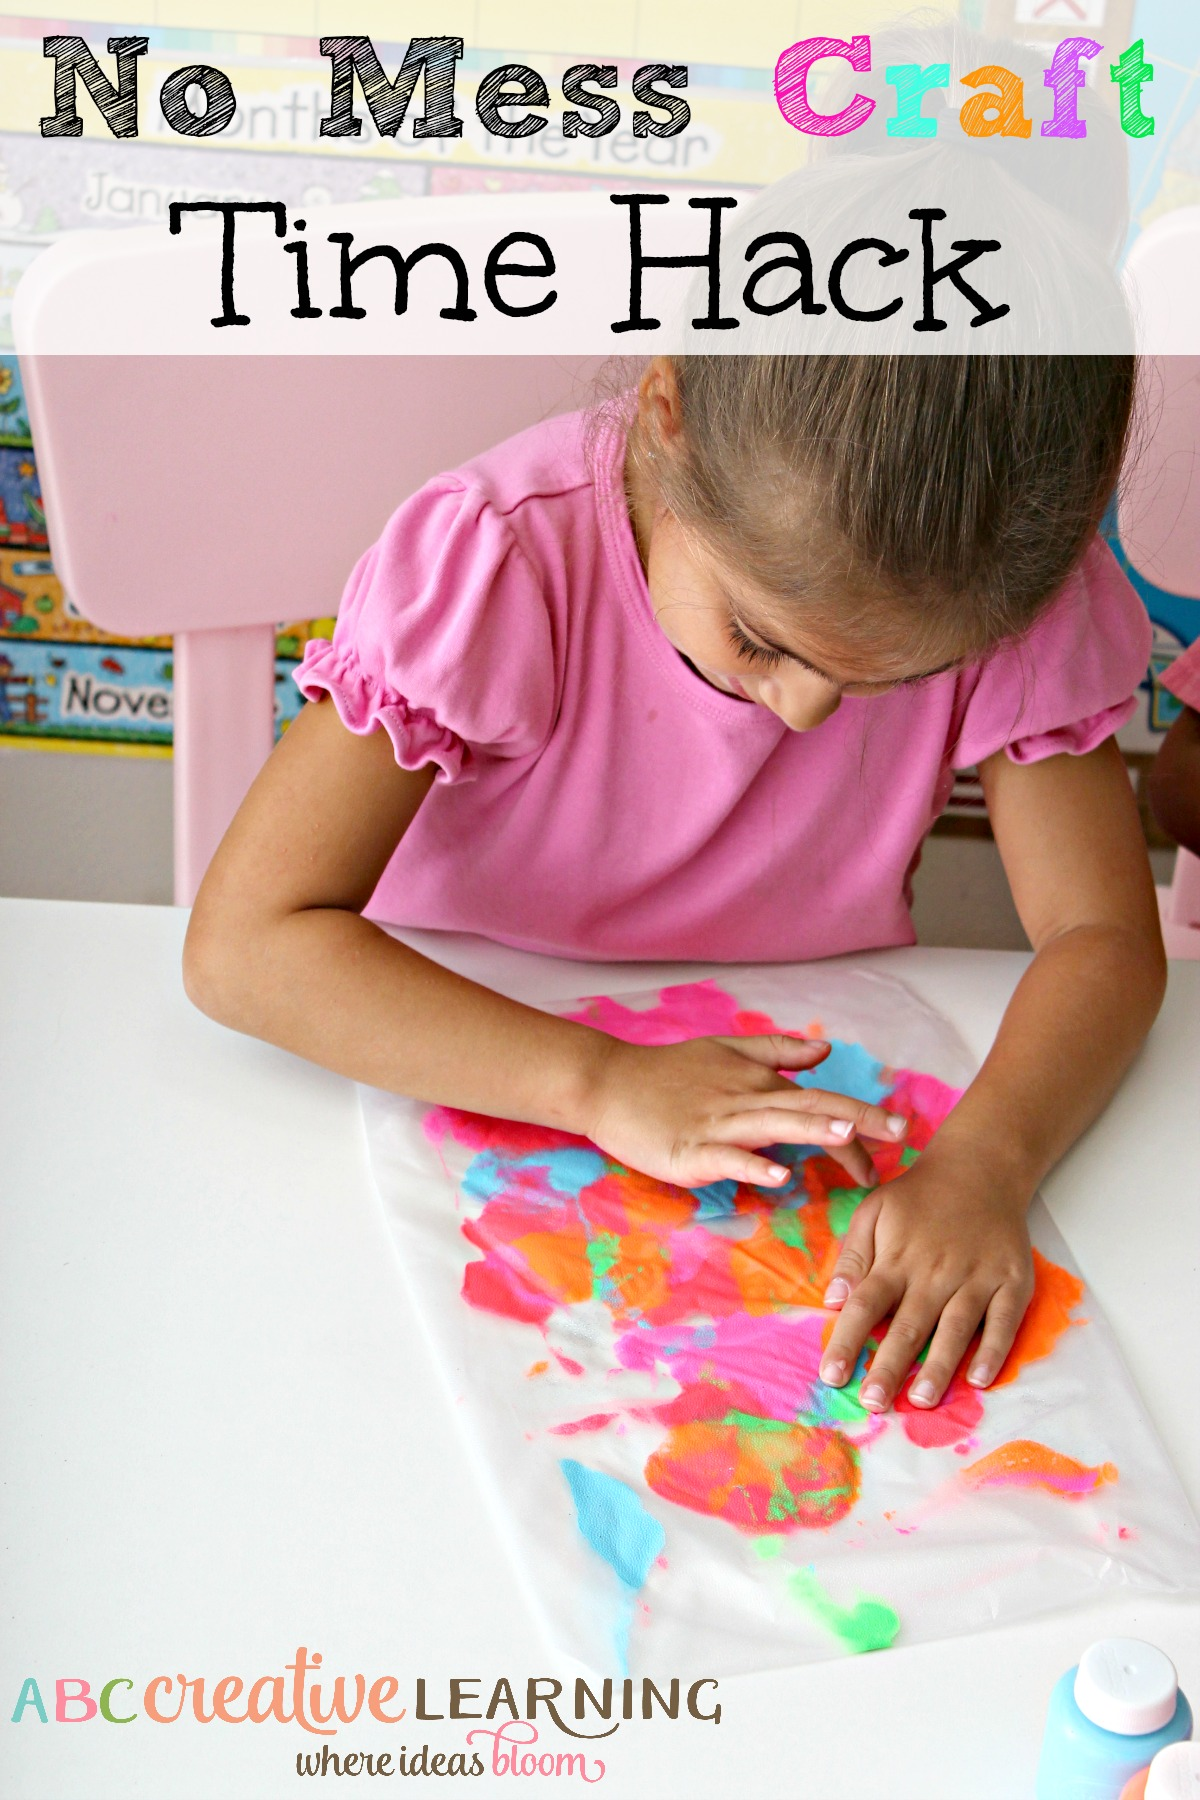 No Mess Craft Time Hack